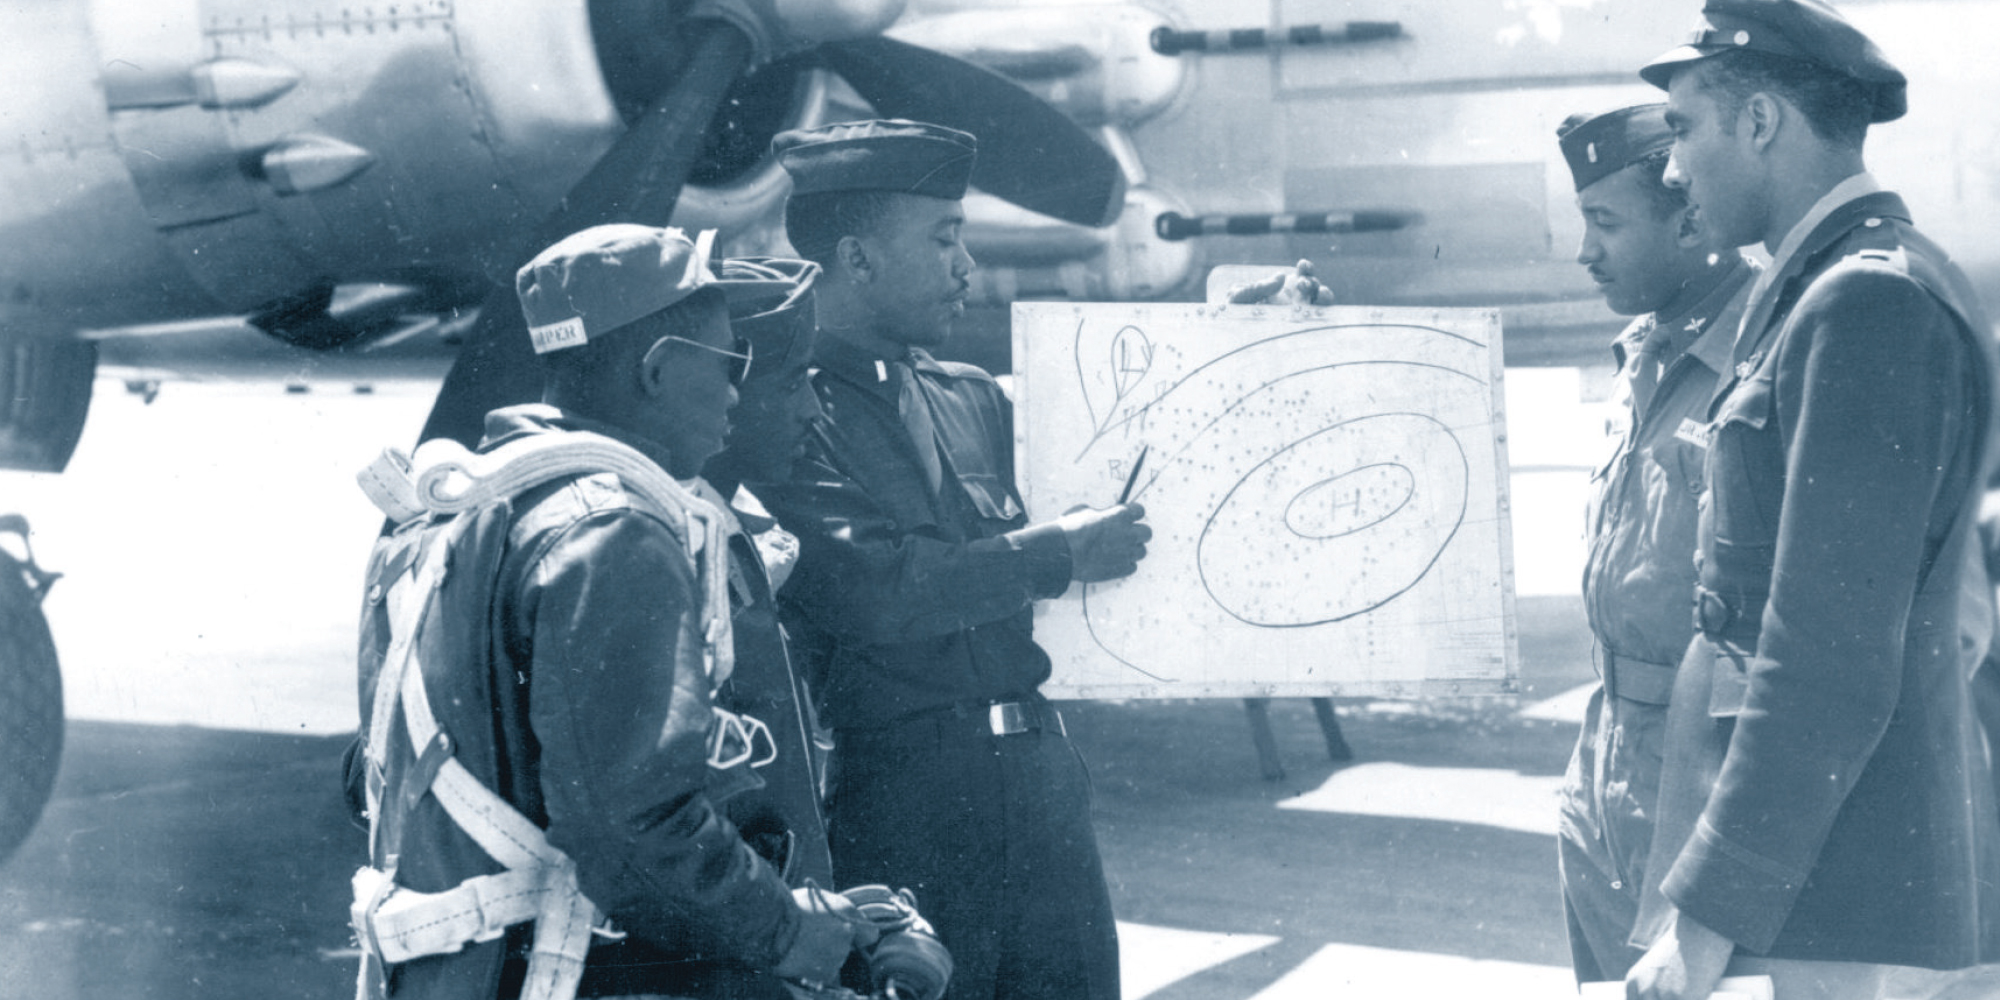 Tuskegee Airmen receiving a weather briefing